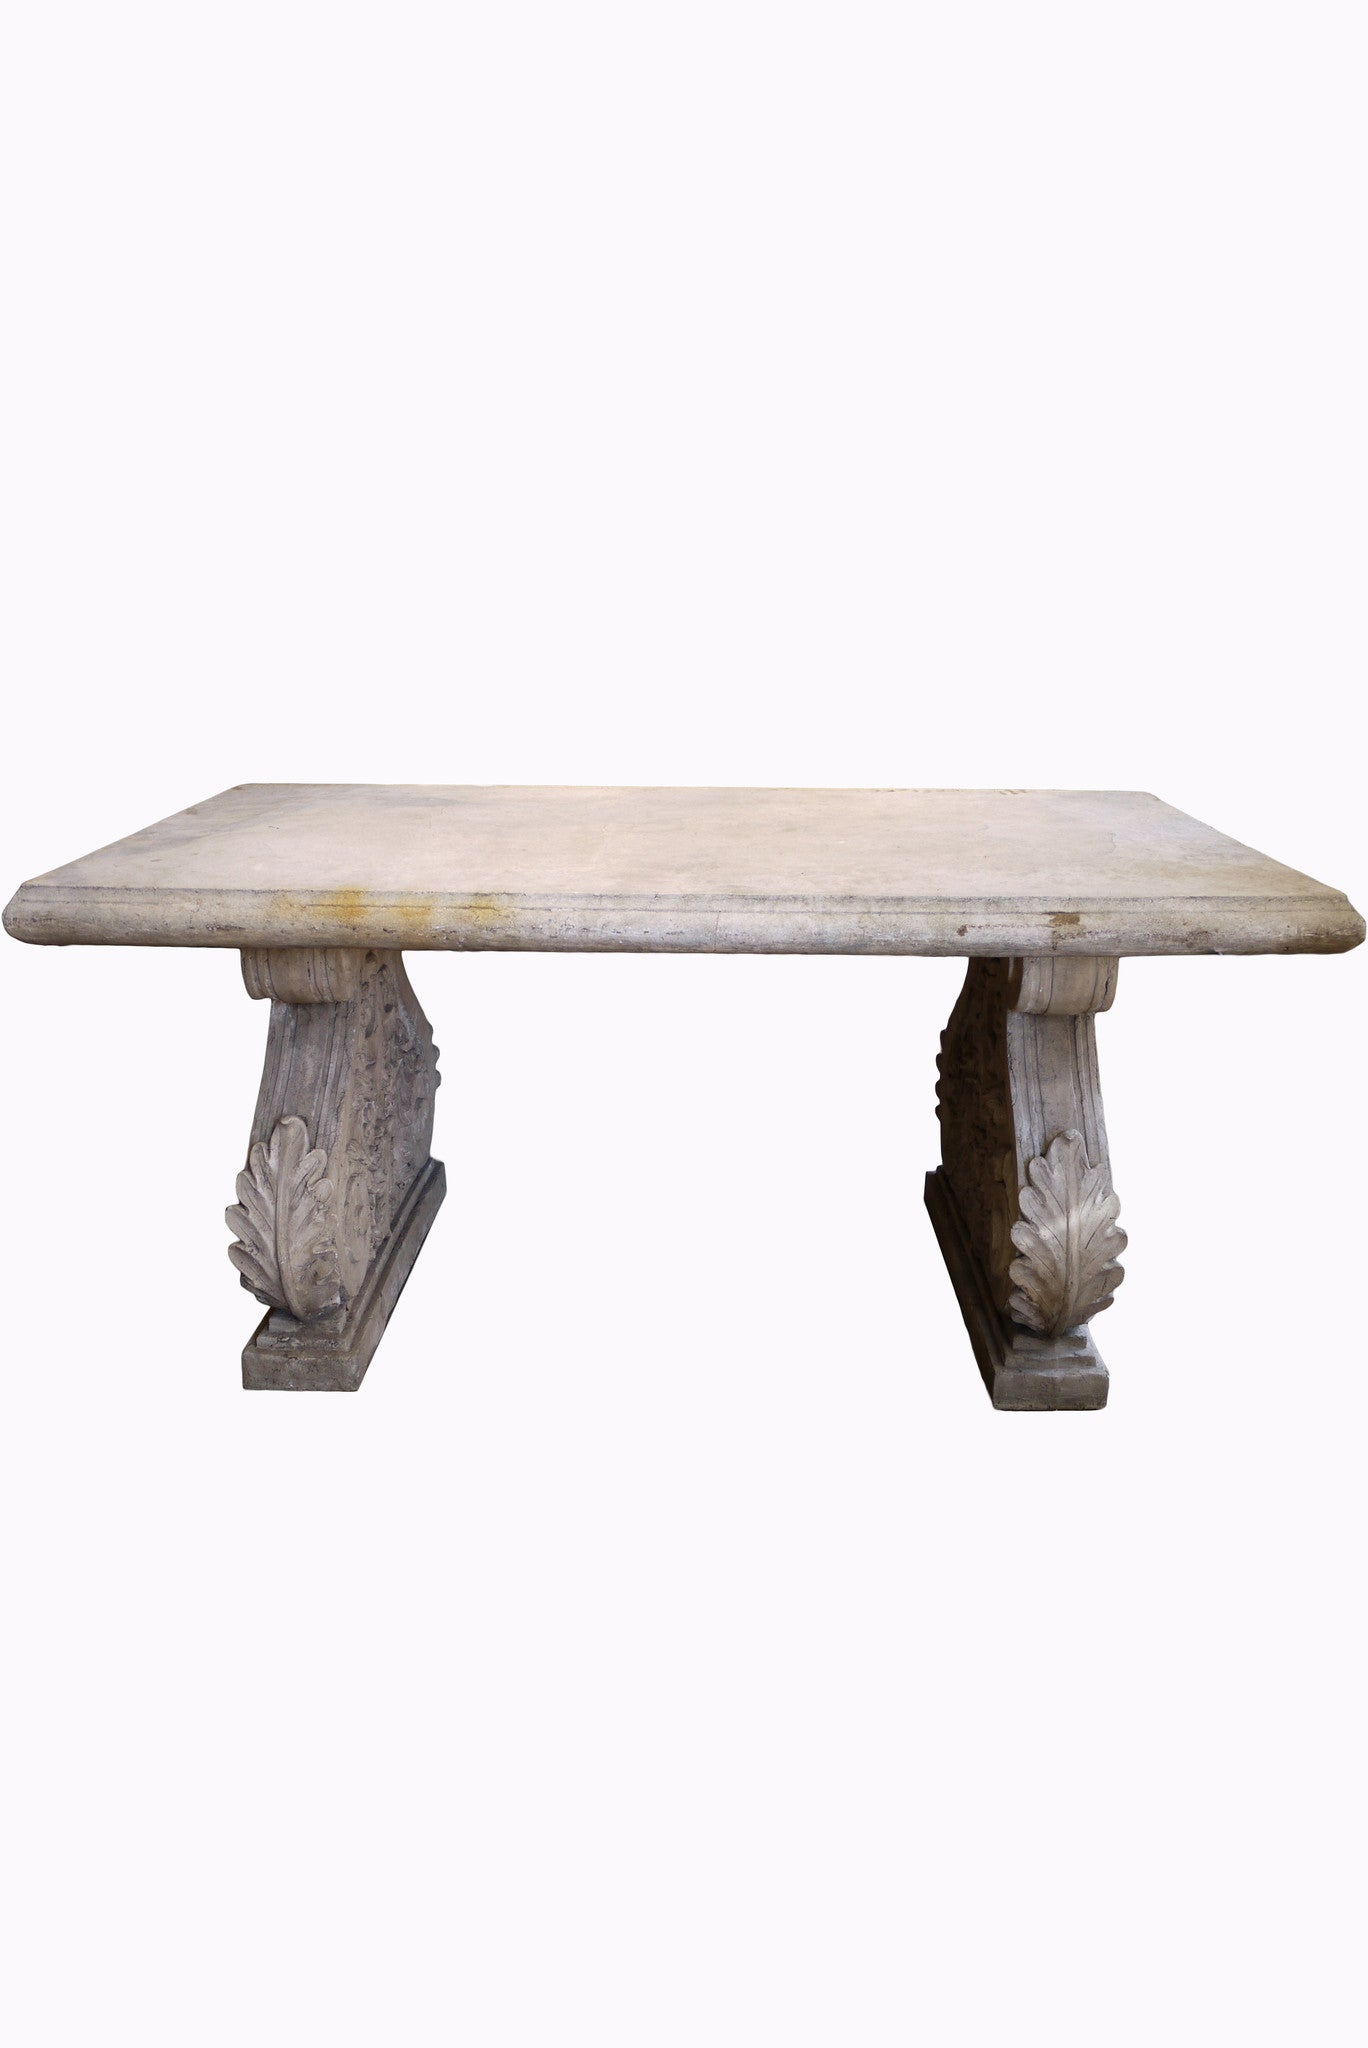 X Large faux stone garden table